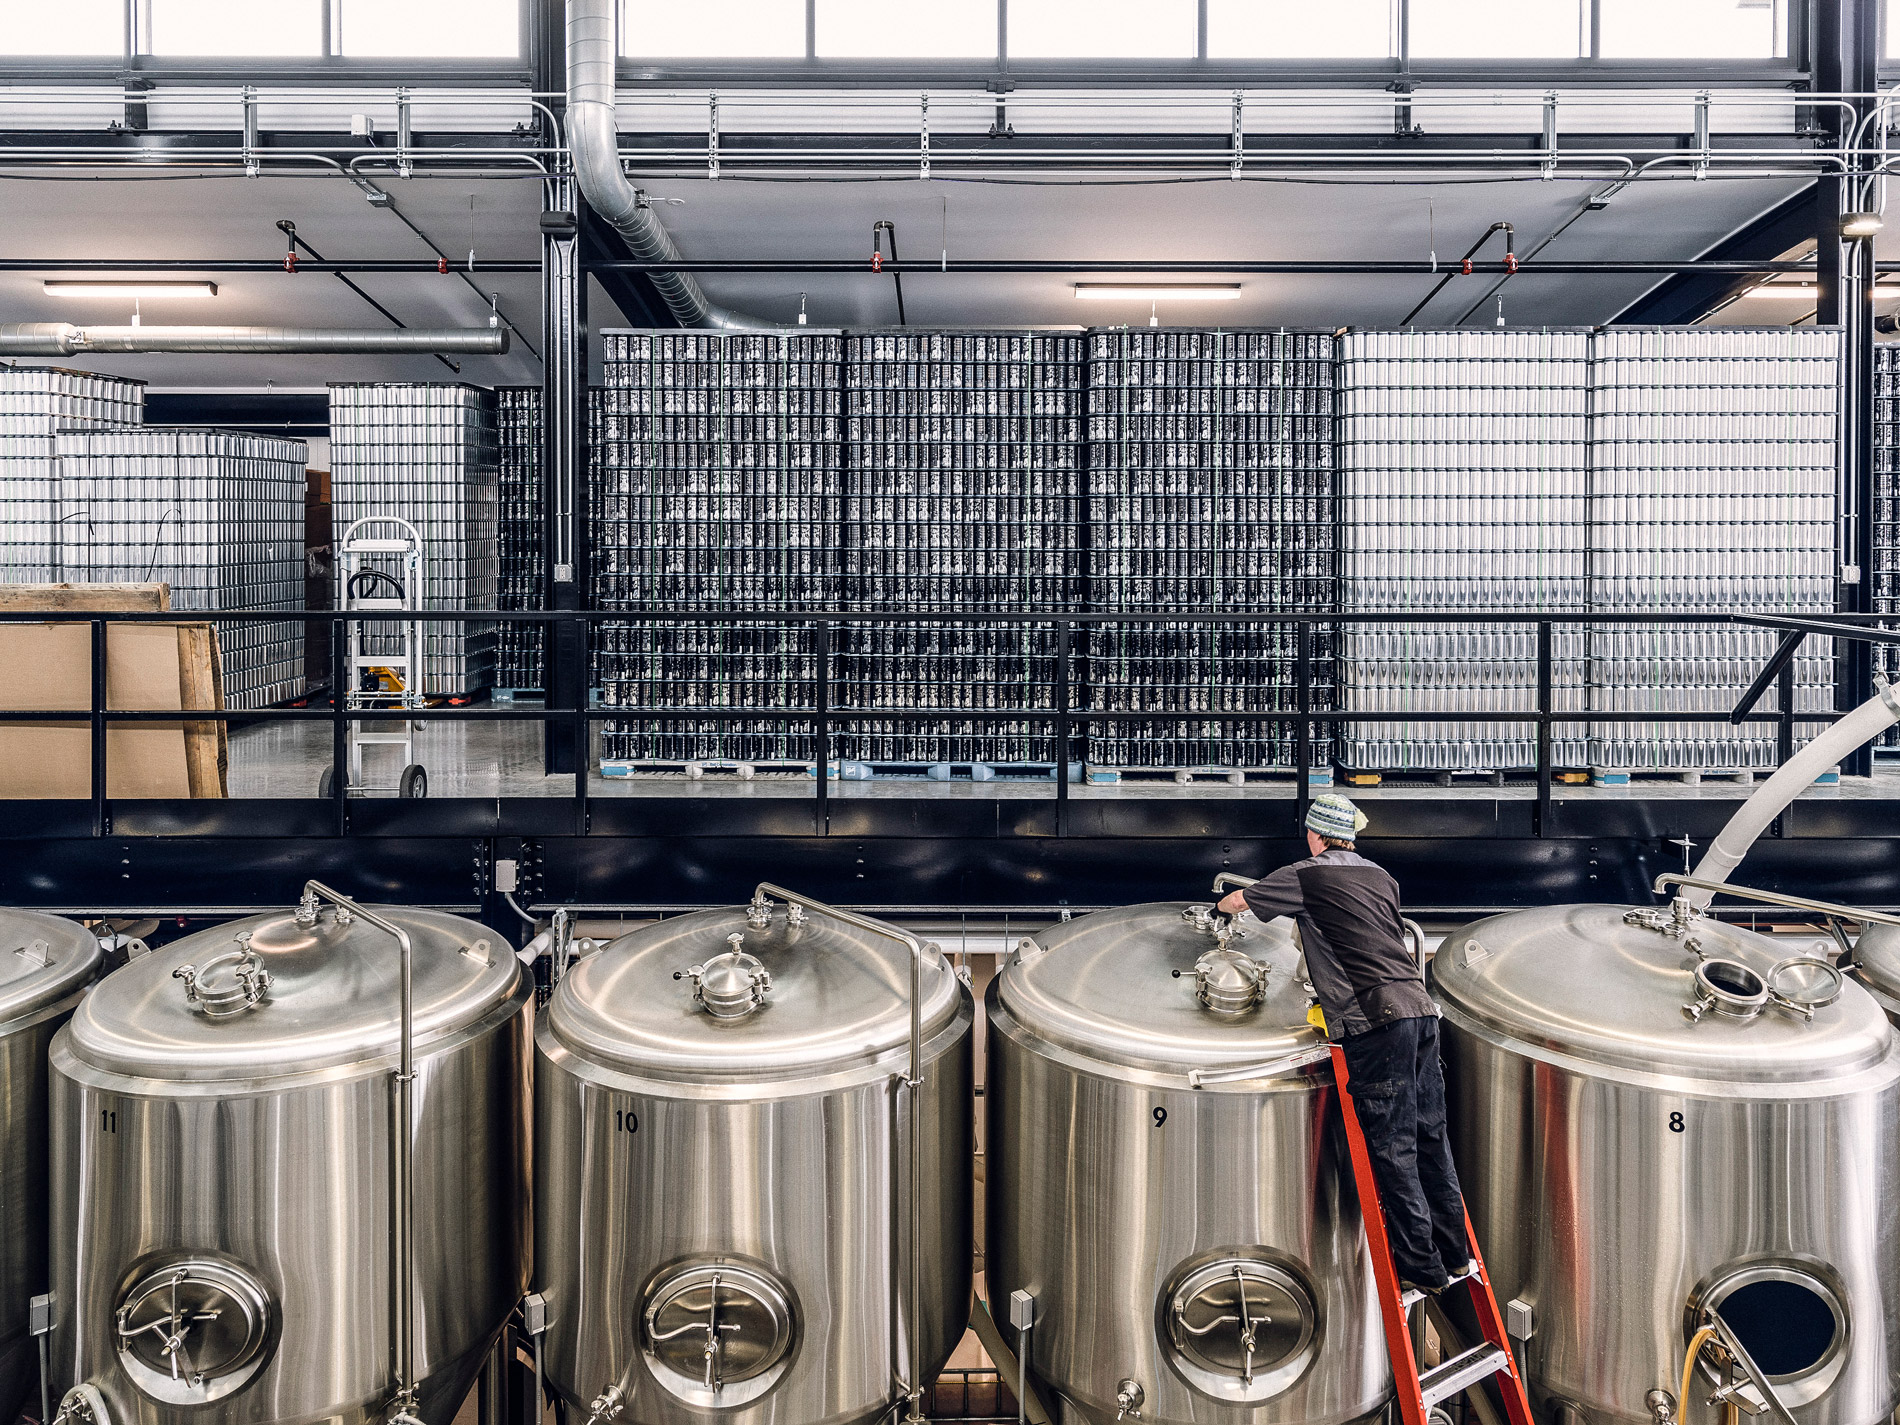 alchemist-heady-topper-production-tanks-FT-BLOG0217.jpg